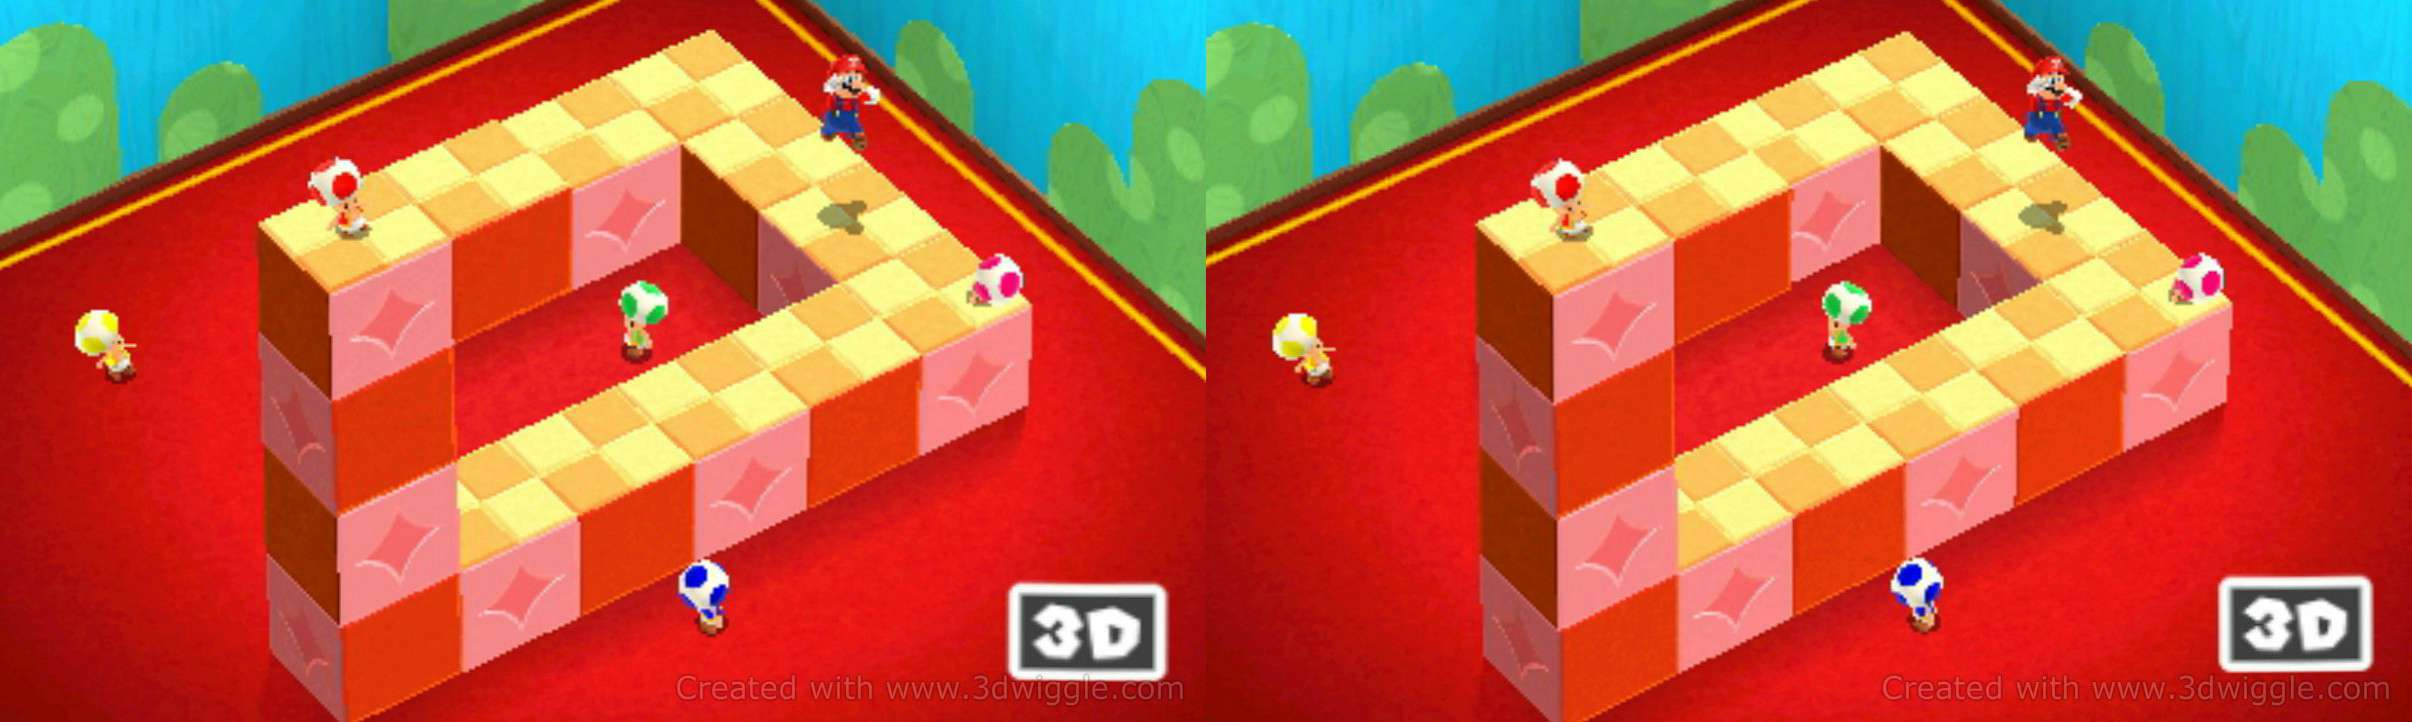 Mario 3D land, Nintendo in-game screenshot, 3dwiggle